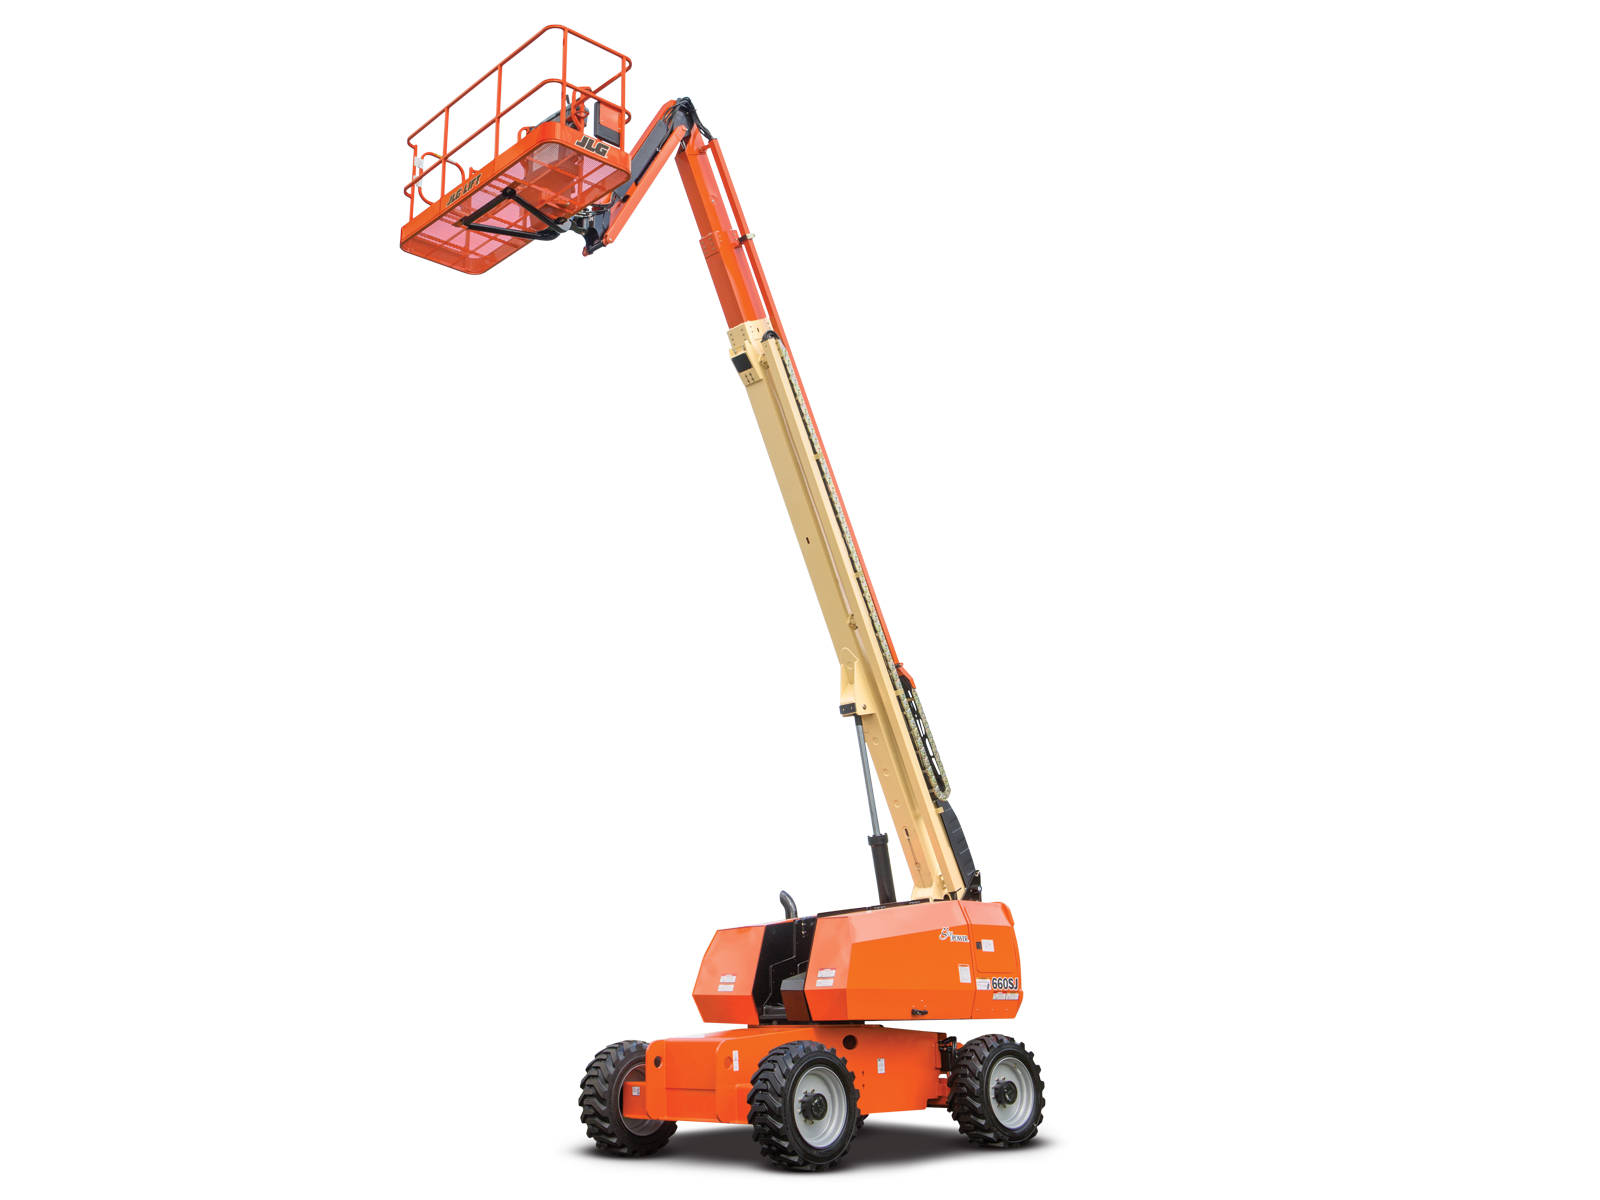 JLG 660SJ | Telescopic Boom Lift on Hire |  WESTERN INDIA SKY LIFTER